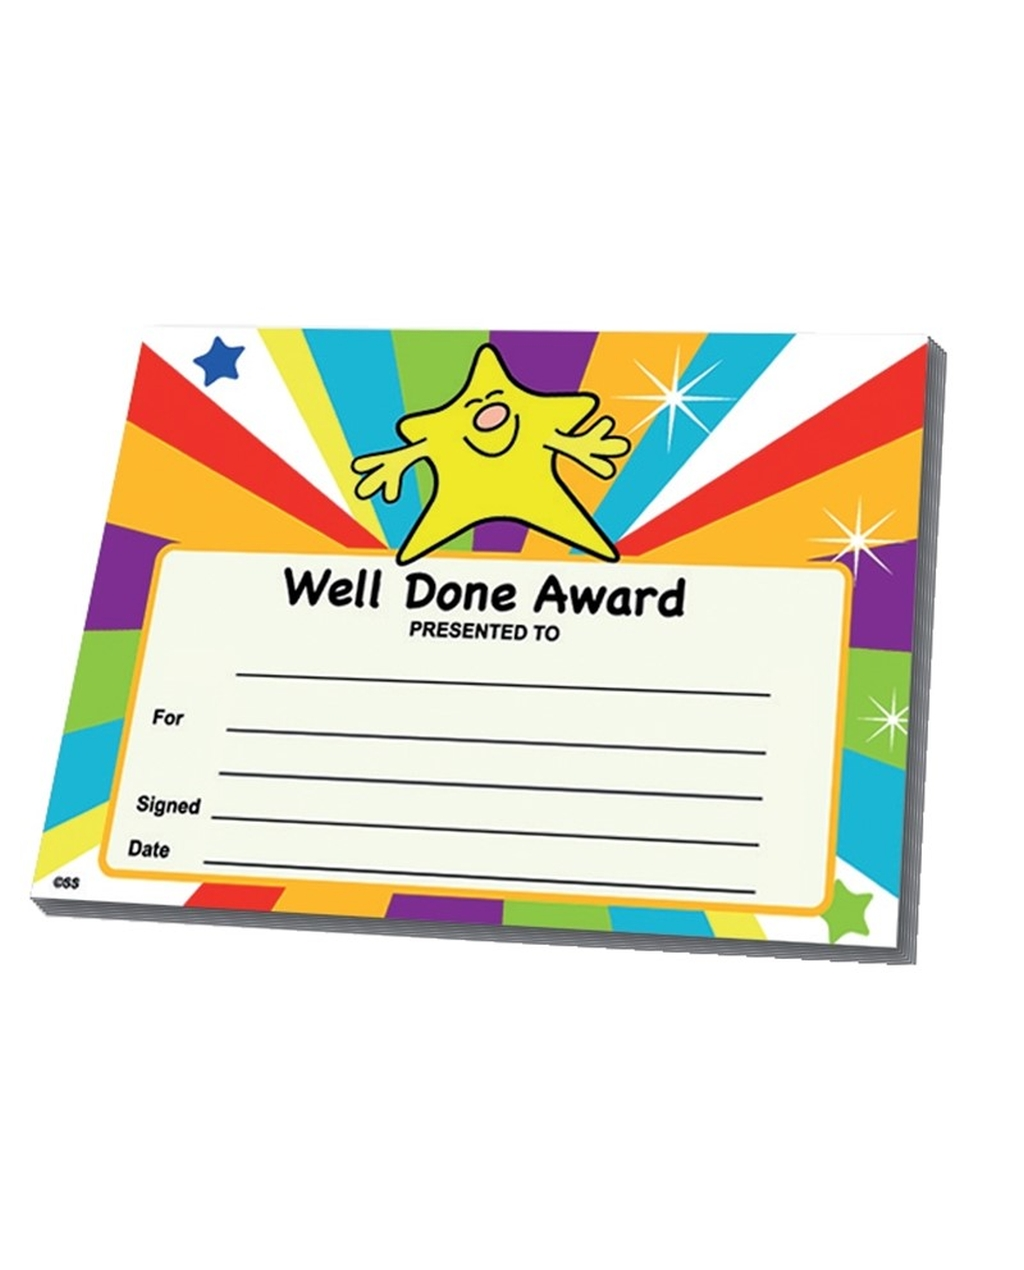 Certifcates - Well Done Award